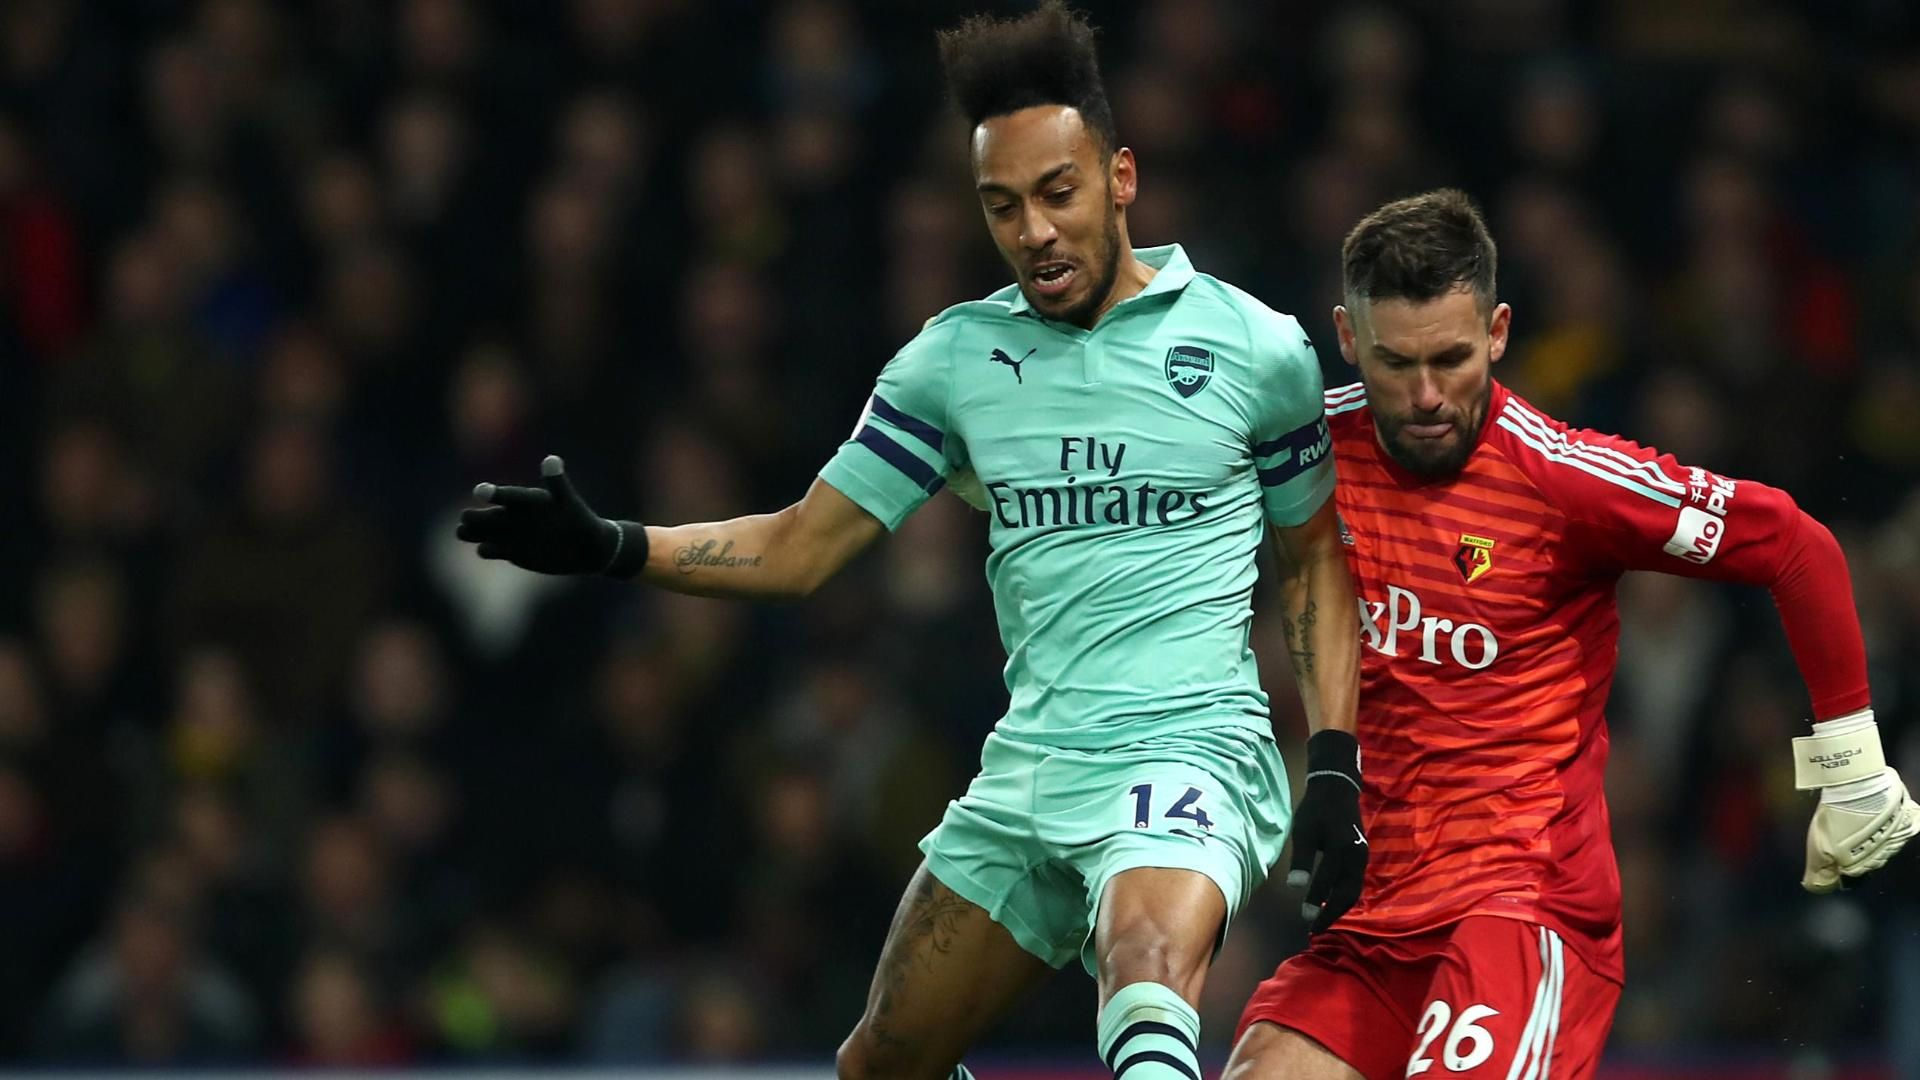 Aubameyang forces Foster mistake to put Arsenal ahead